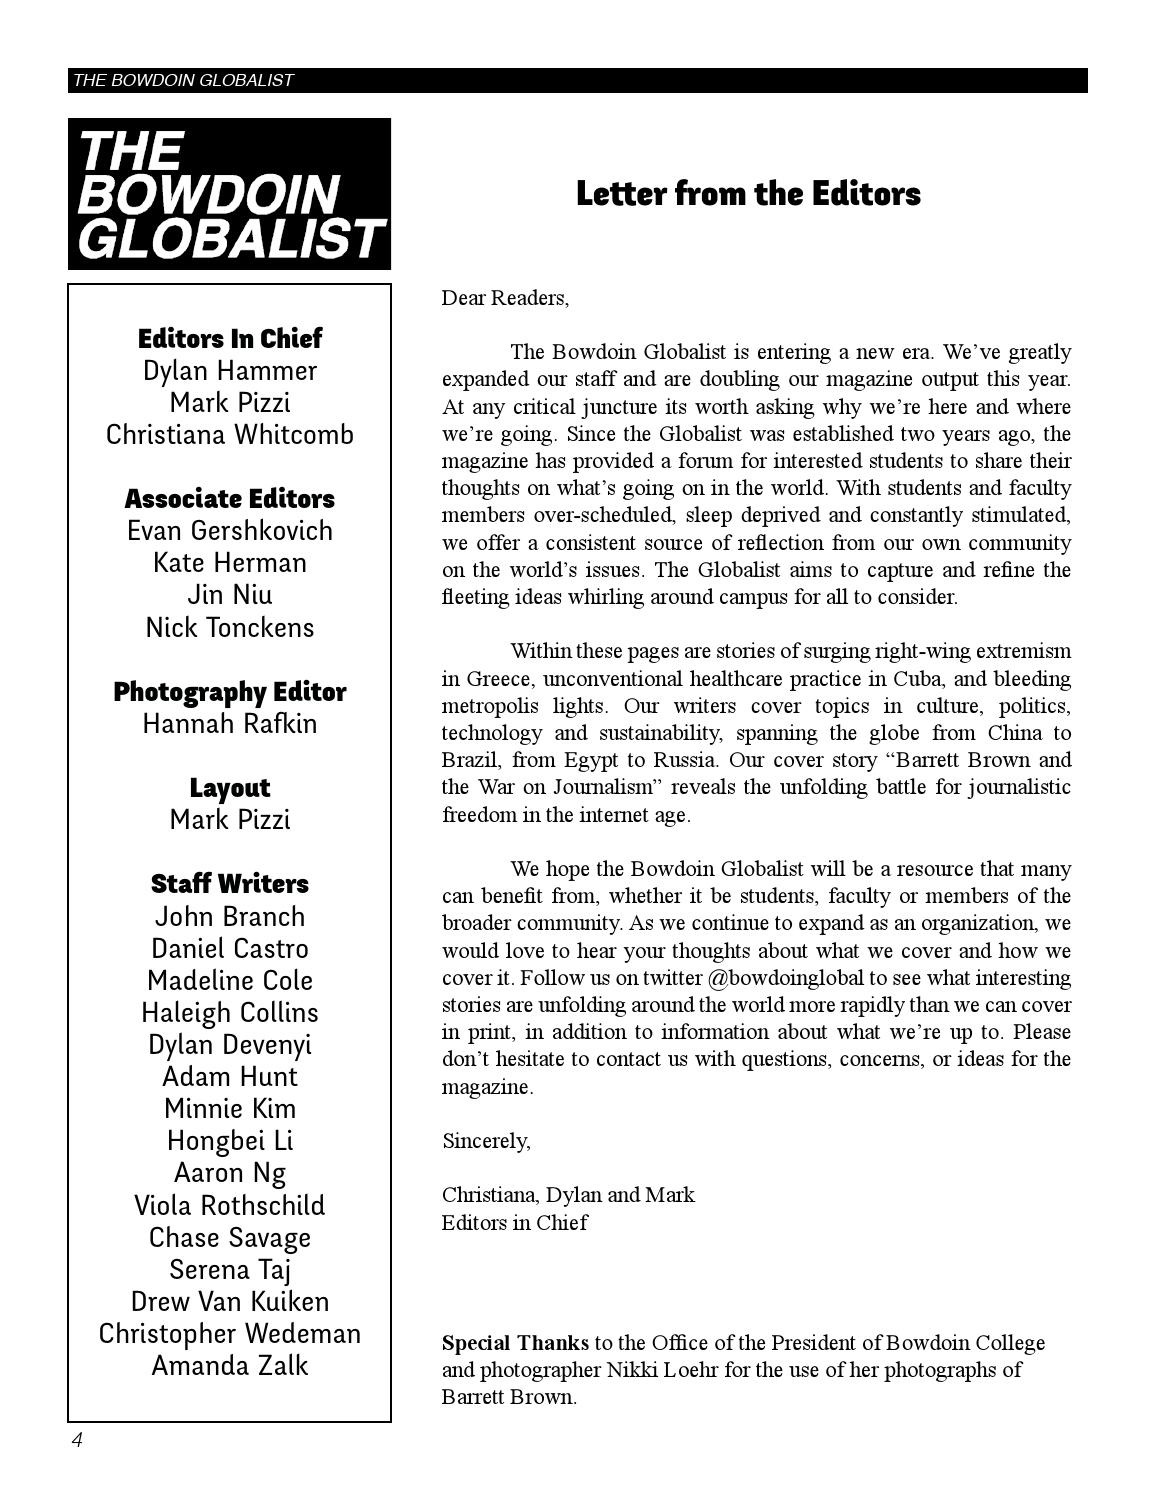 The Bowdoin Globalist Issue 4 November 2013 By